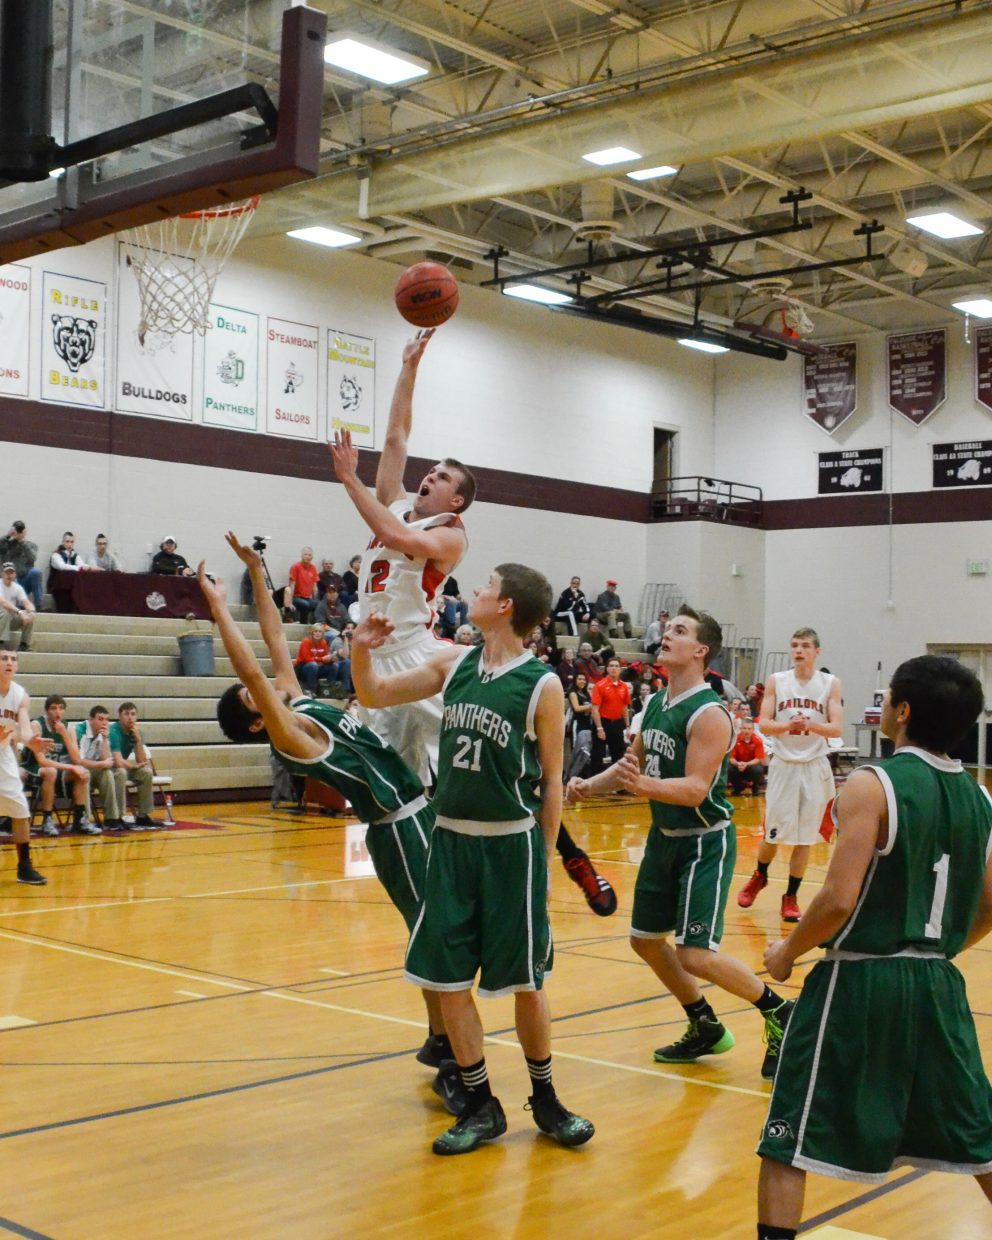 Nathan DePuy drives to the basket for two and gets the foul during Steamboat Springs' game against Delta in the Western Slope tournament. Steamboat won, 45-27.